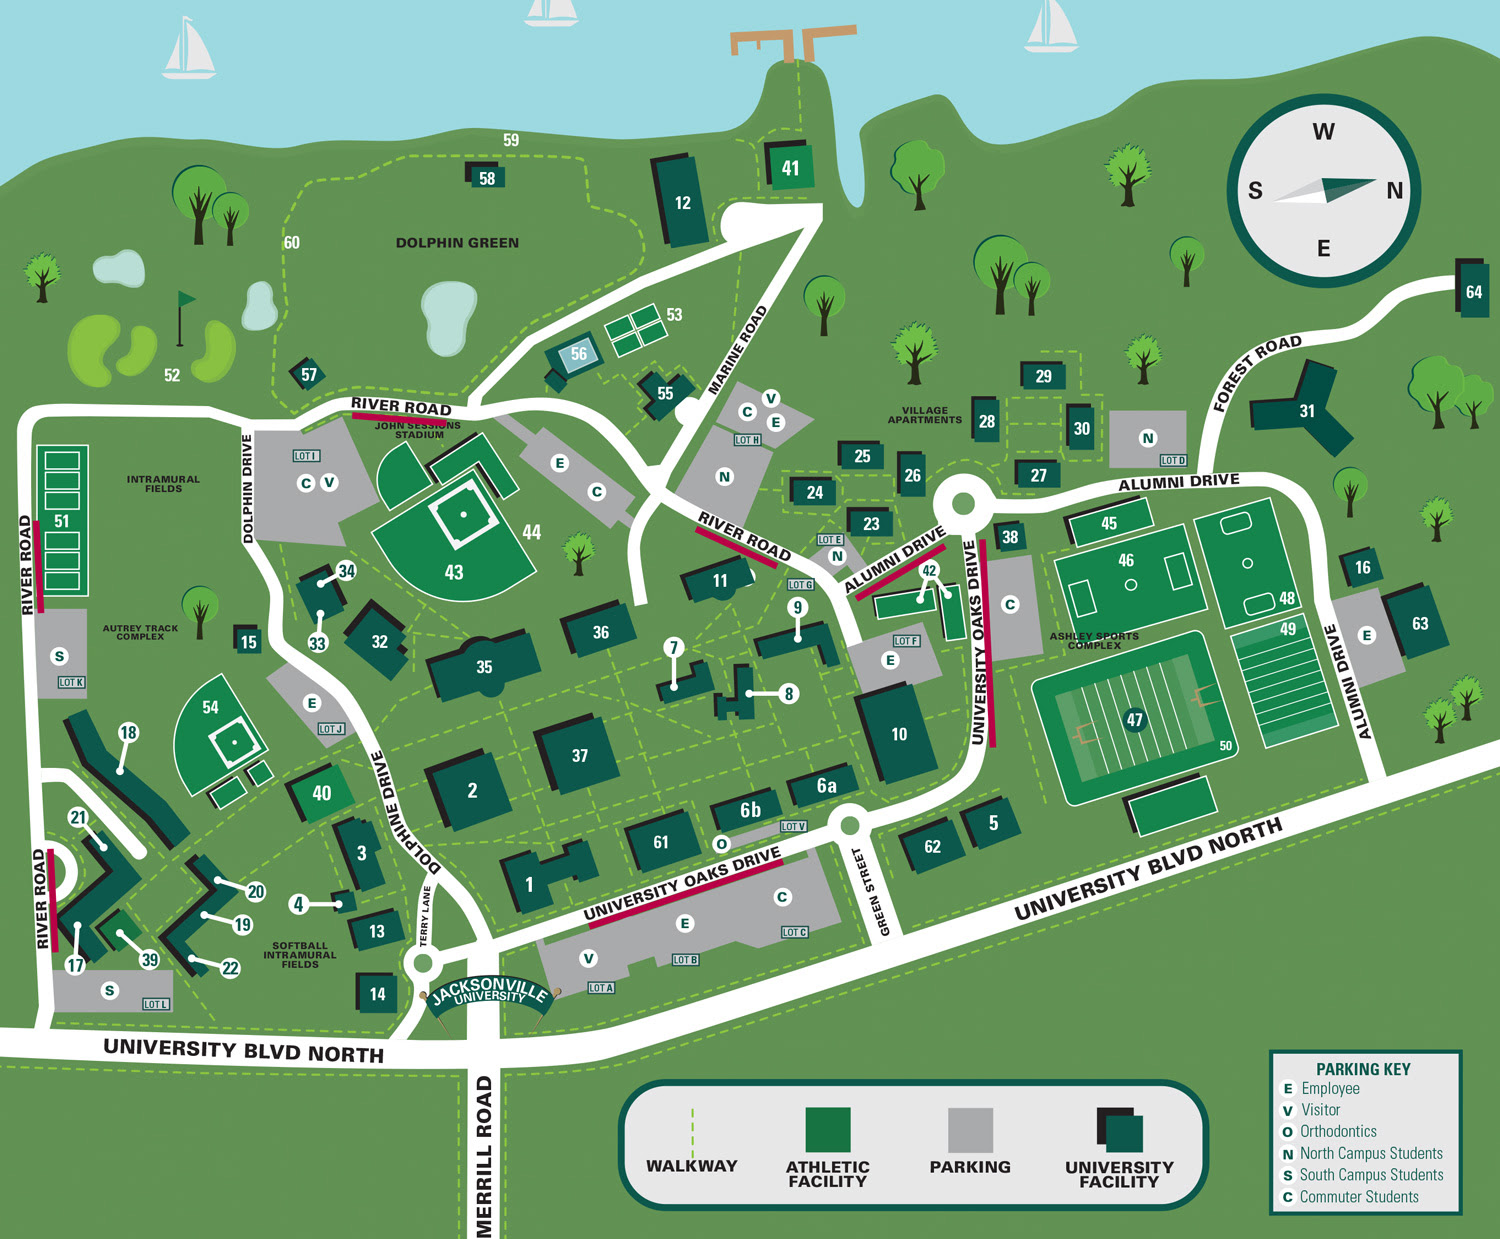 jacksonville state university campus map Zip Code Map Jacksonville University Campus Map jacksonville state university campus map